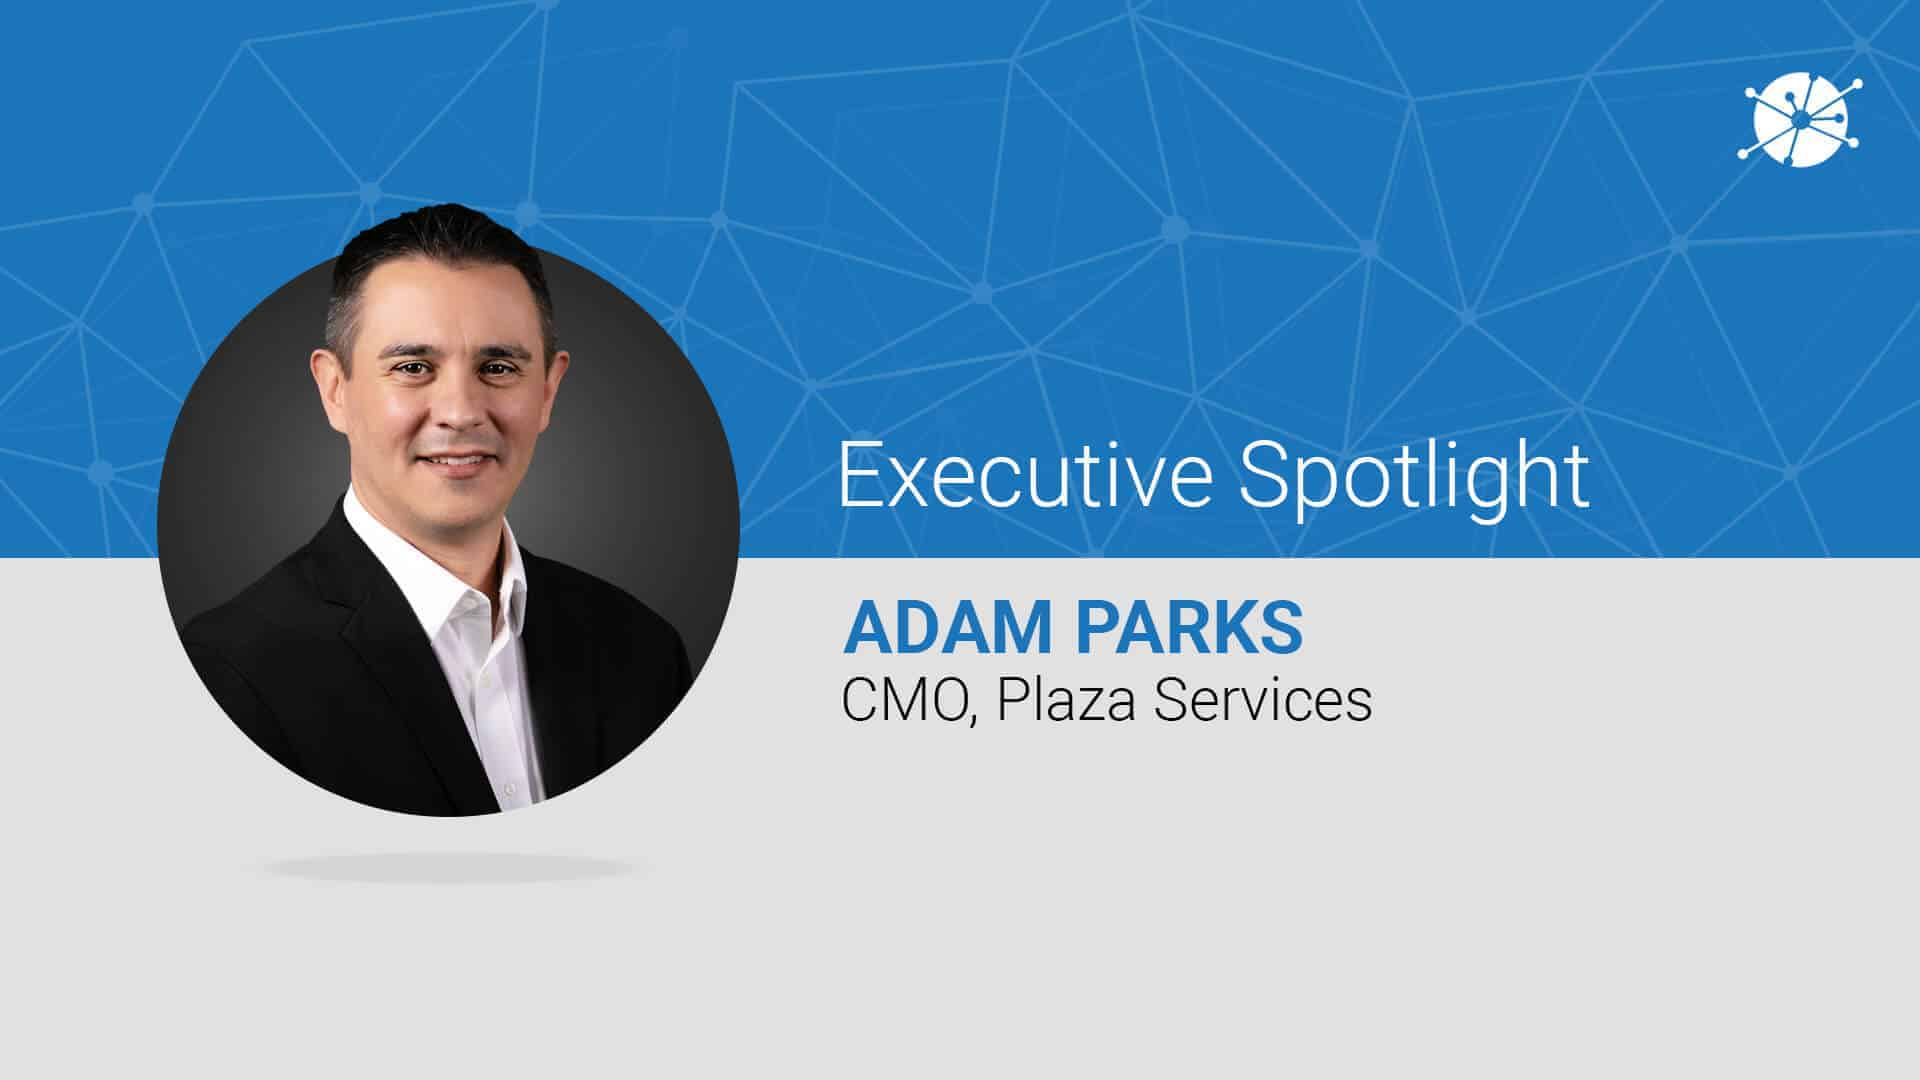 Executive spotlight profile of adam parks